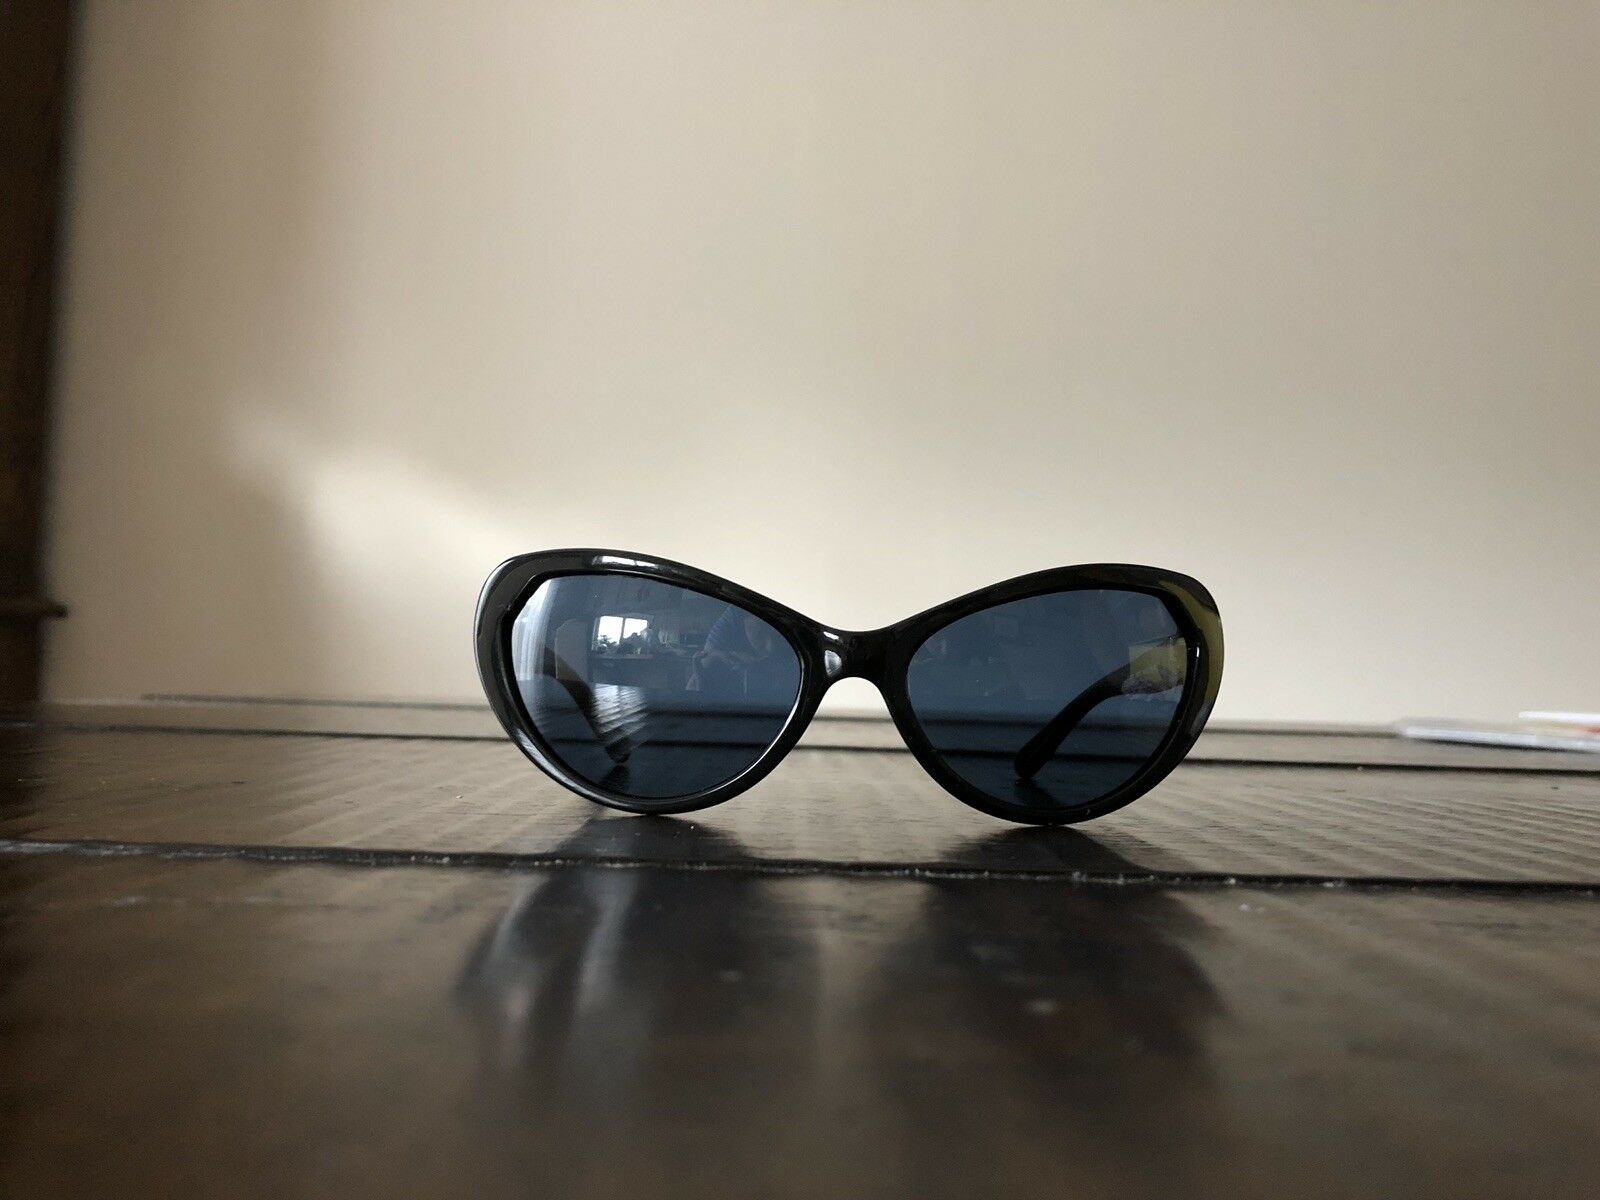 100% Authentic Tory Burch brand new sunglases